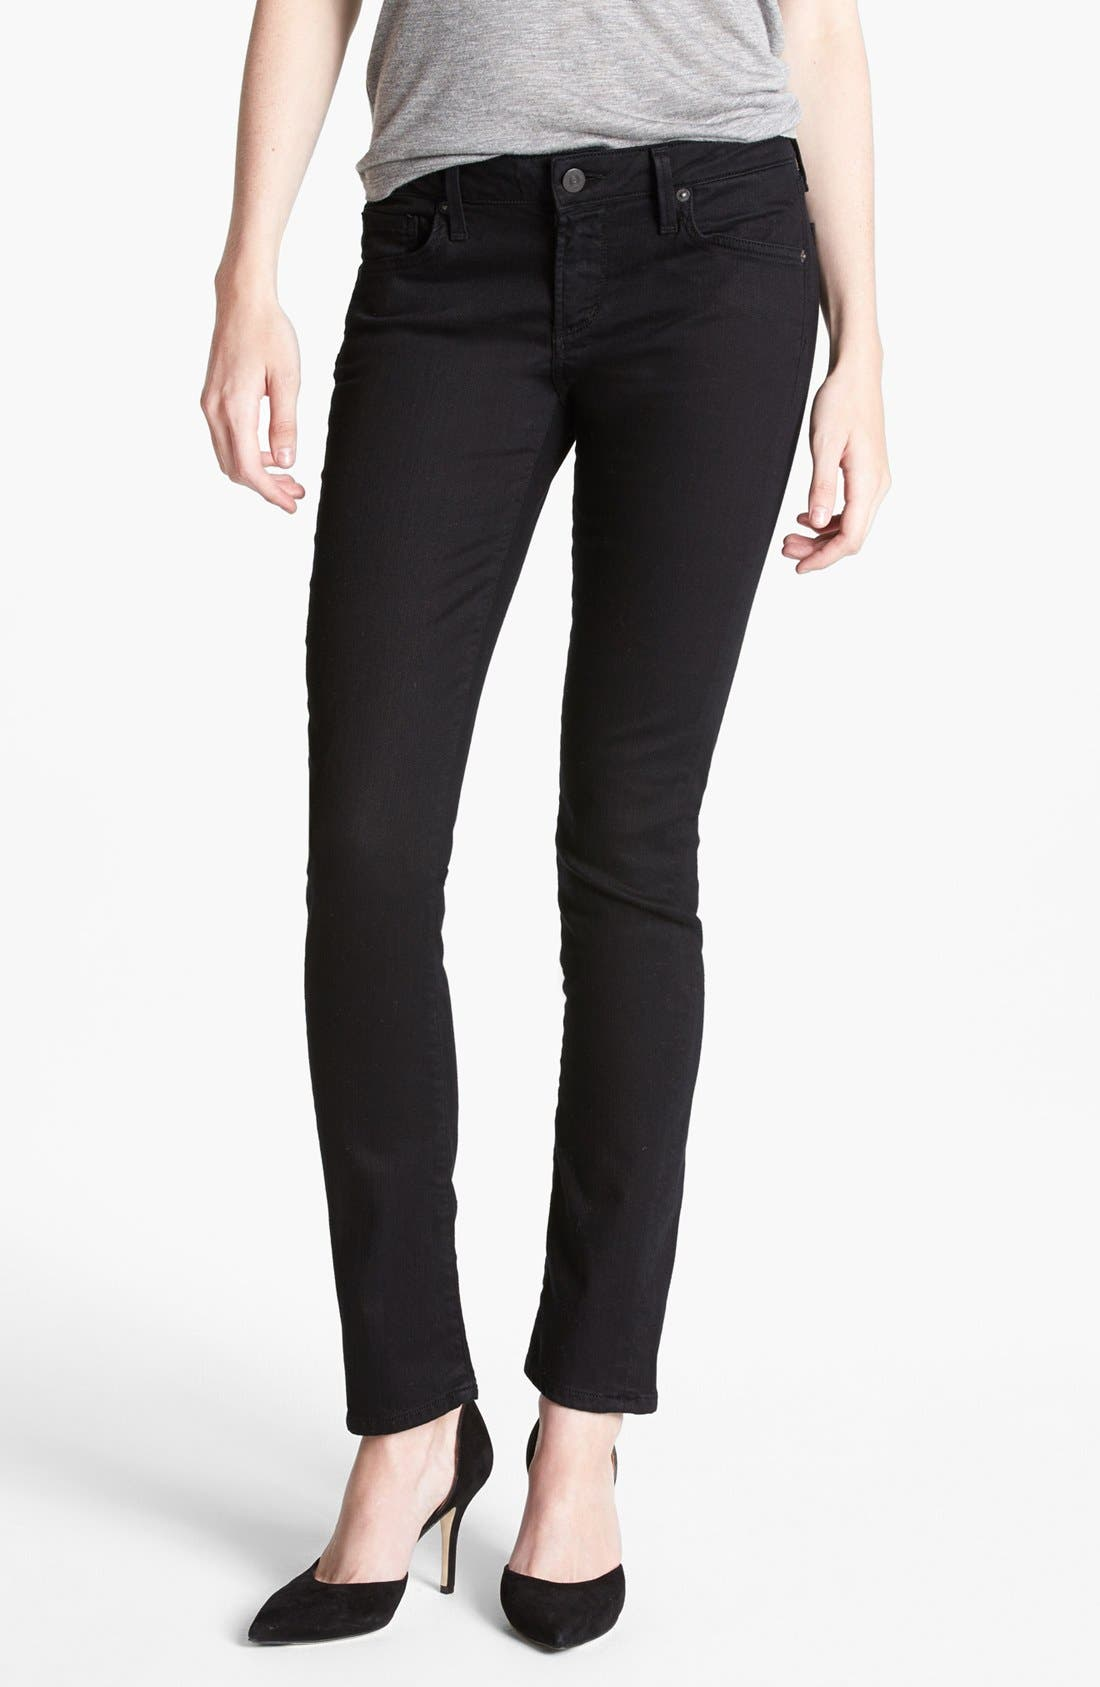 Main Image - Citizens of Humanity 'Racer' Low Rise Skinny Jeans (Black Diamond)